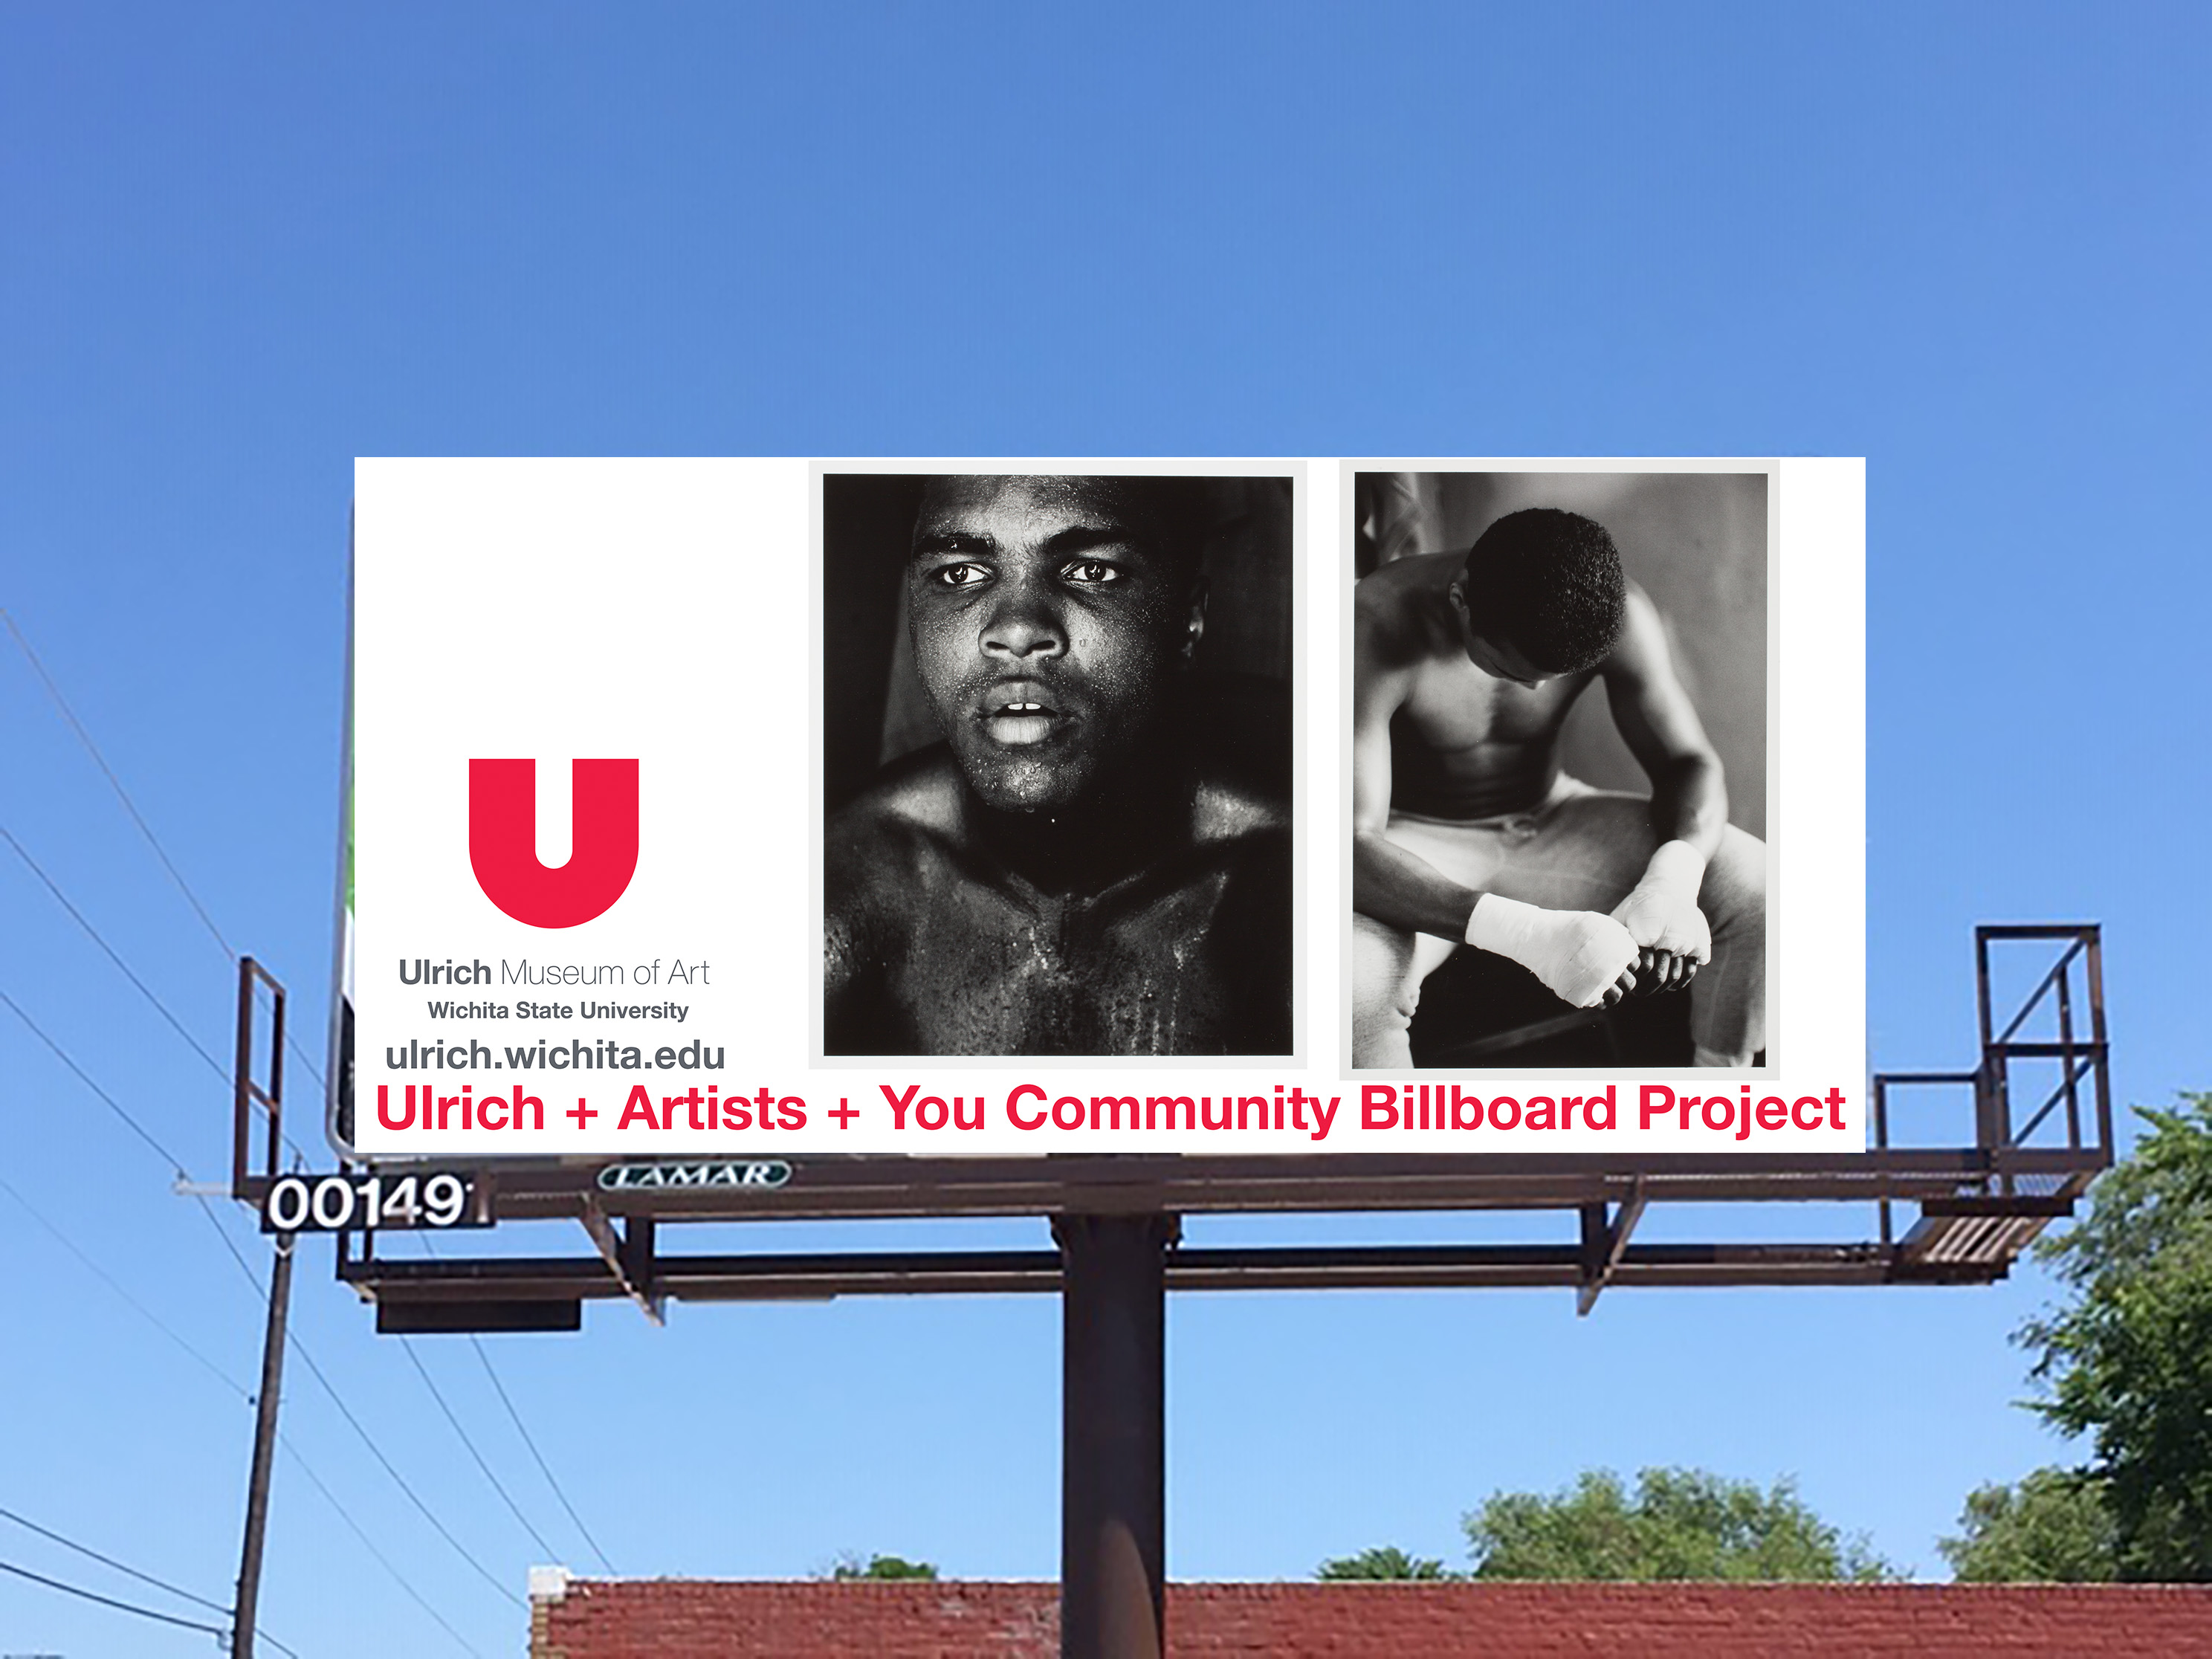 Ulrich + Artists + You Community Billboard Project Main Splash Image